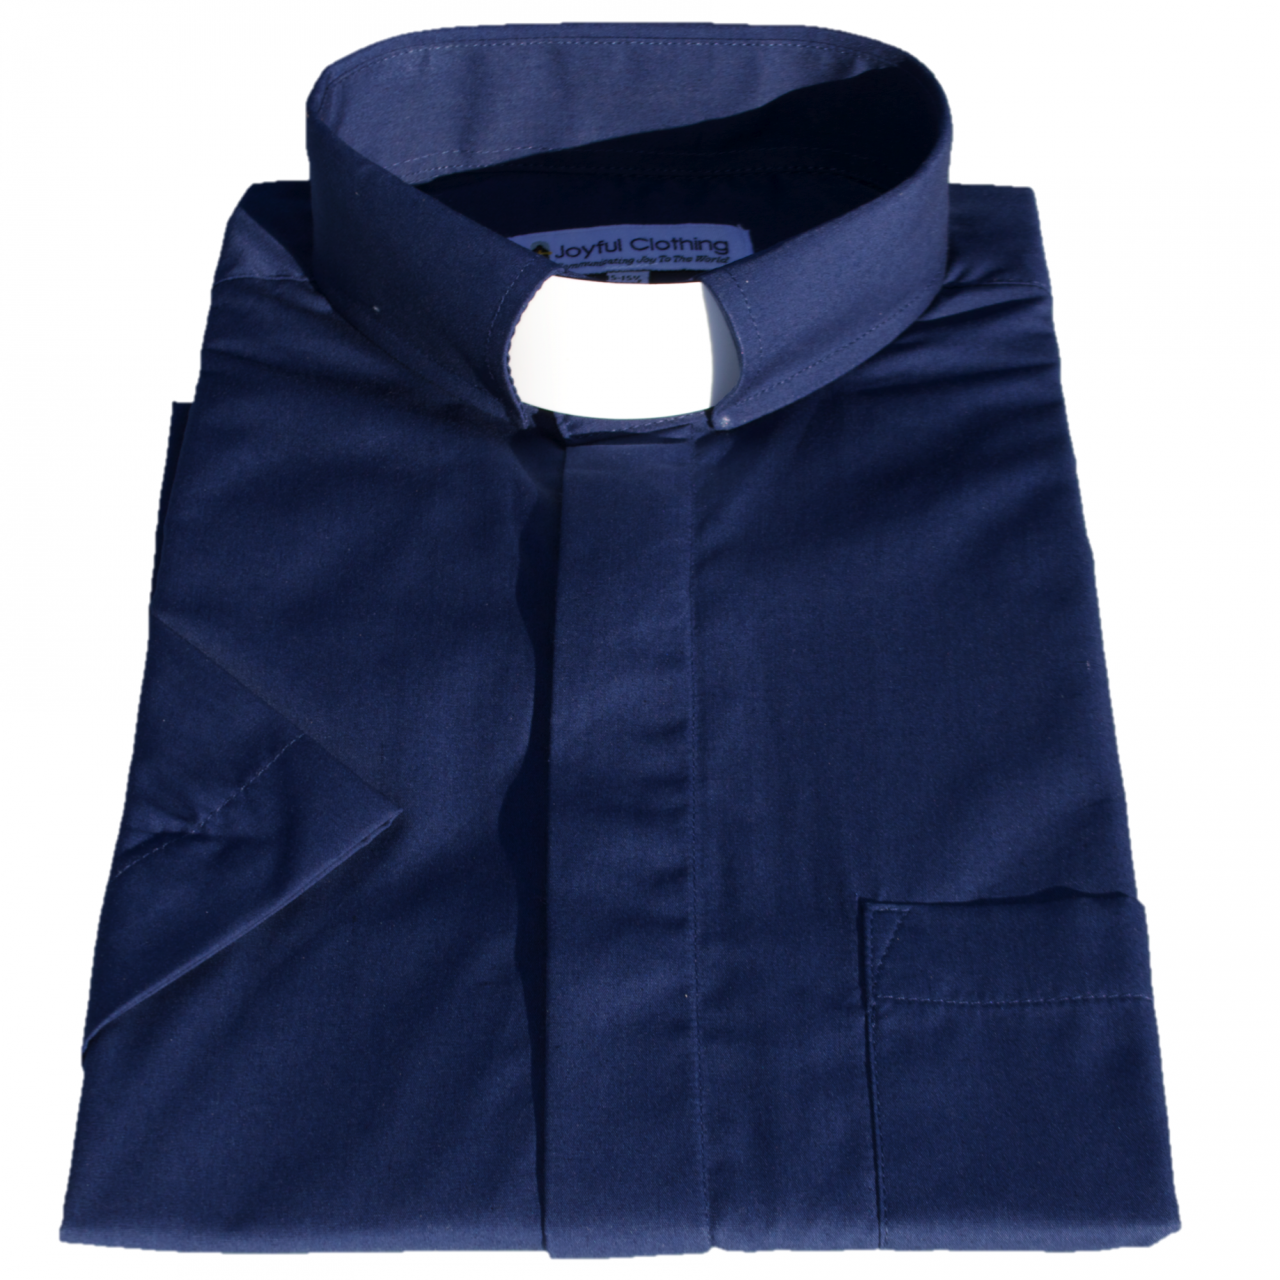 175. Men's Short-Sleeve Tab-Collar Clergy Shirt - Navy